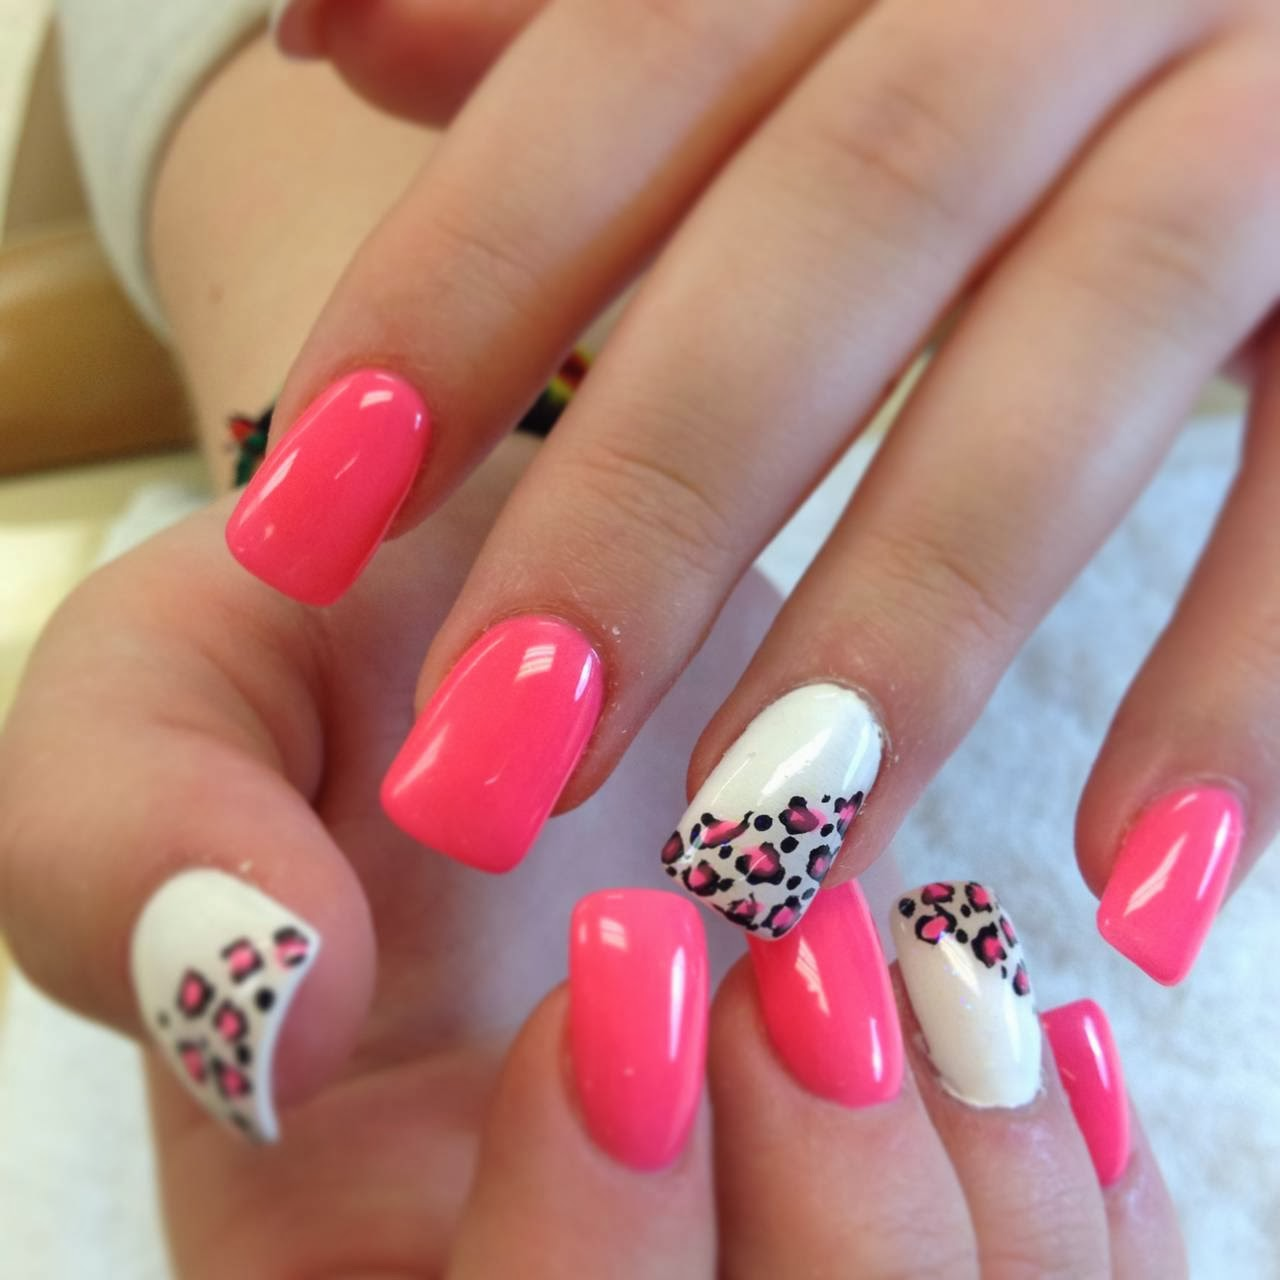 artificial nails | takingcareofyournails